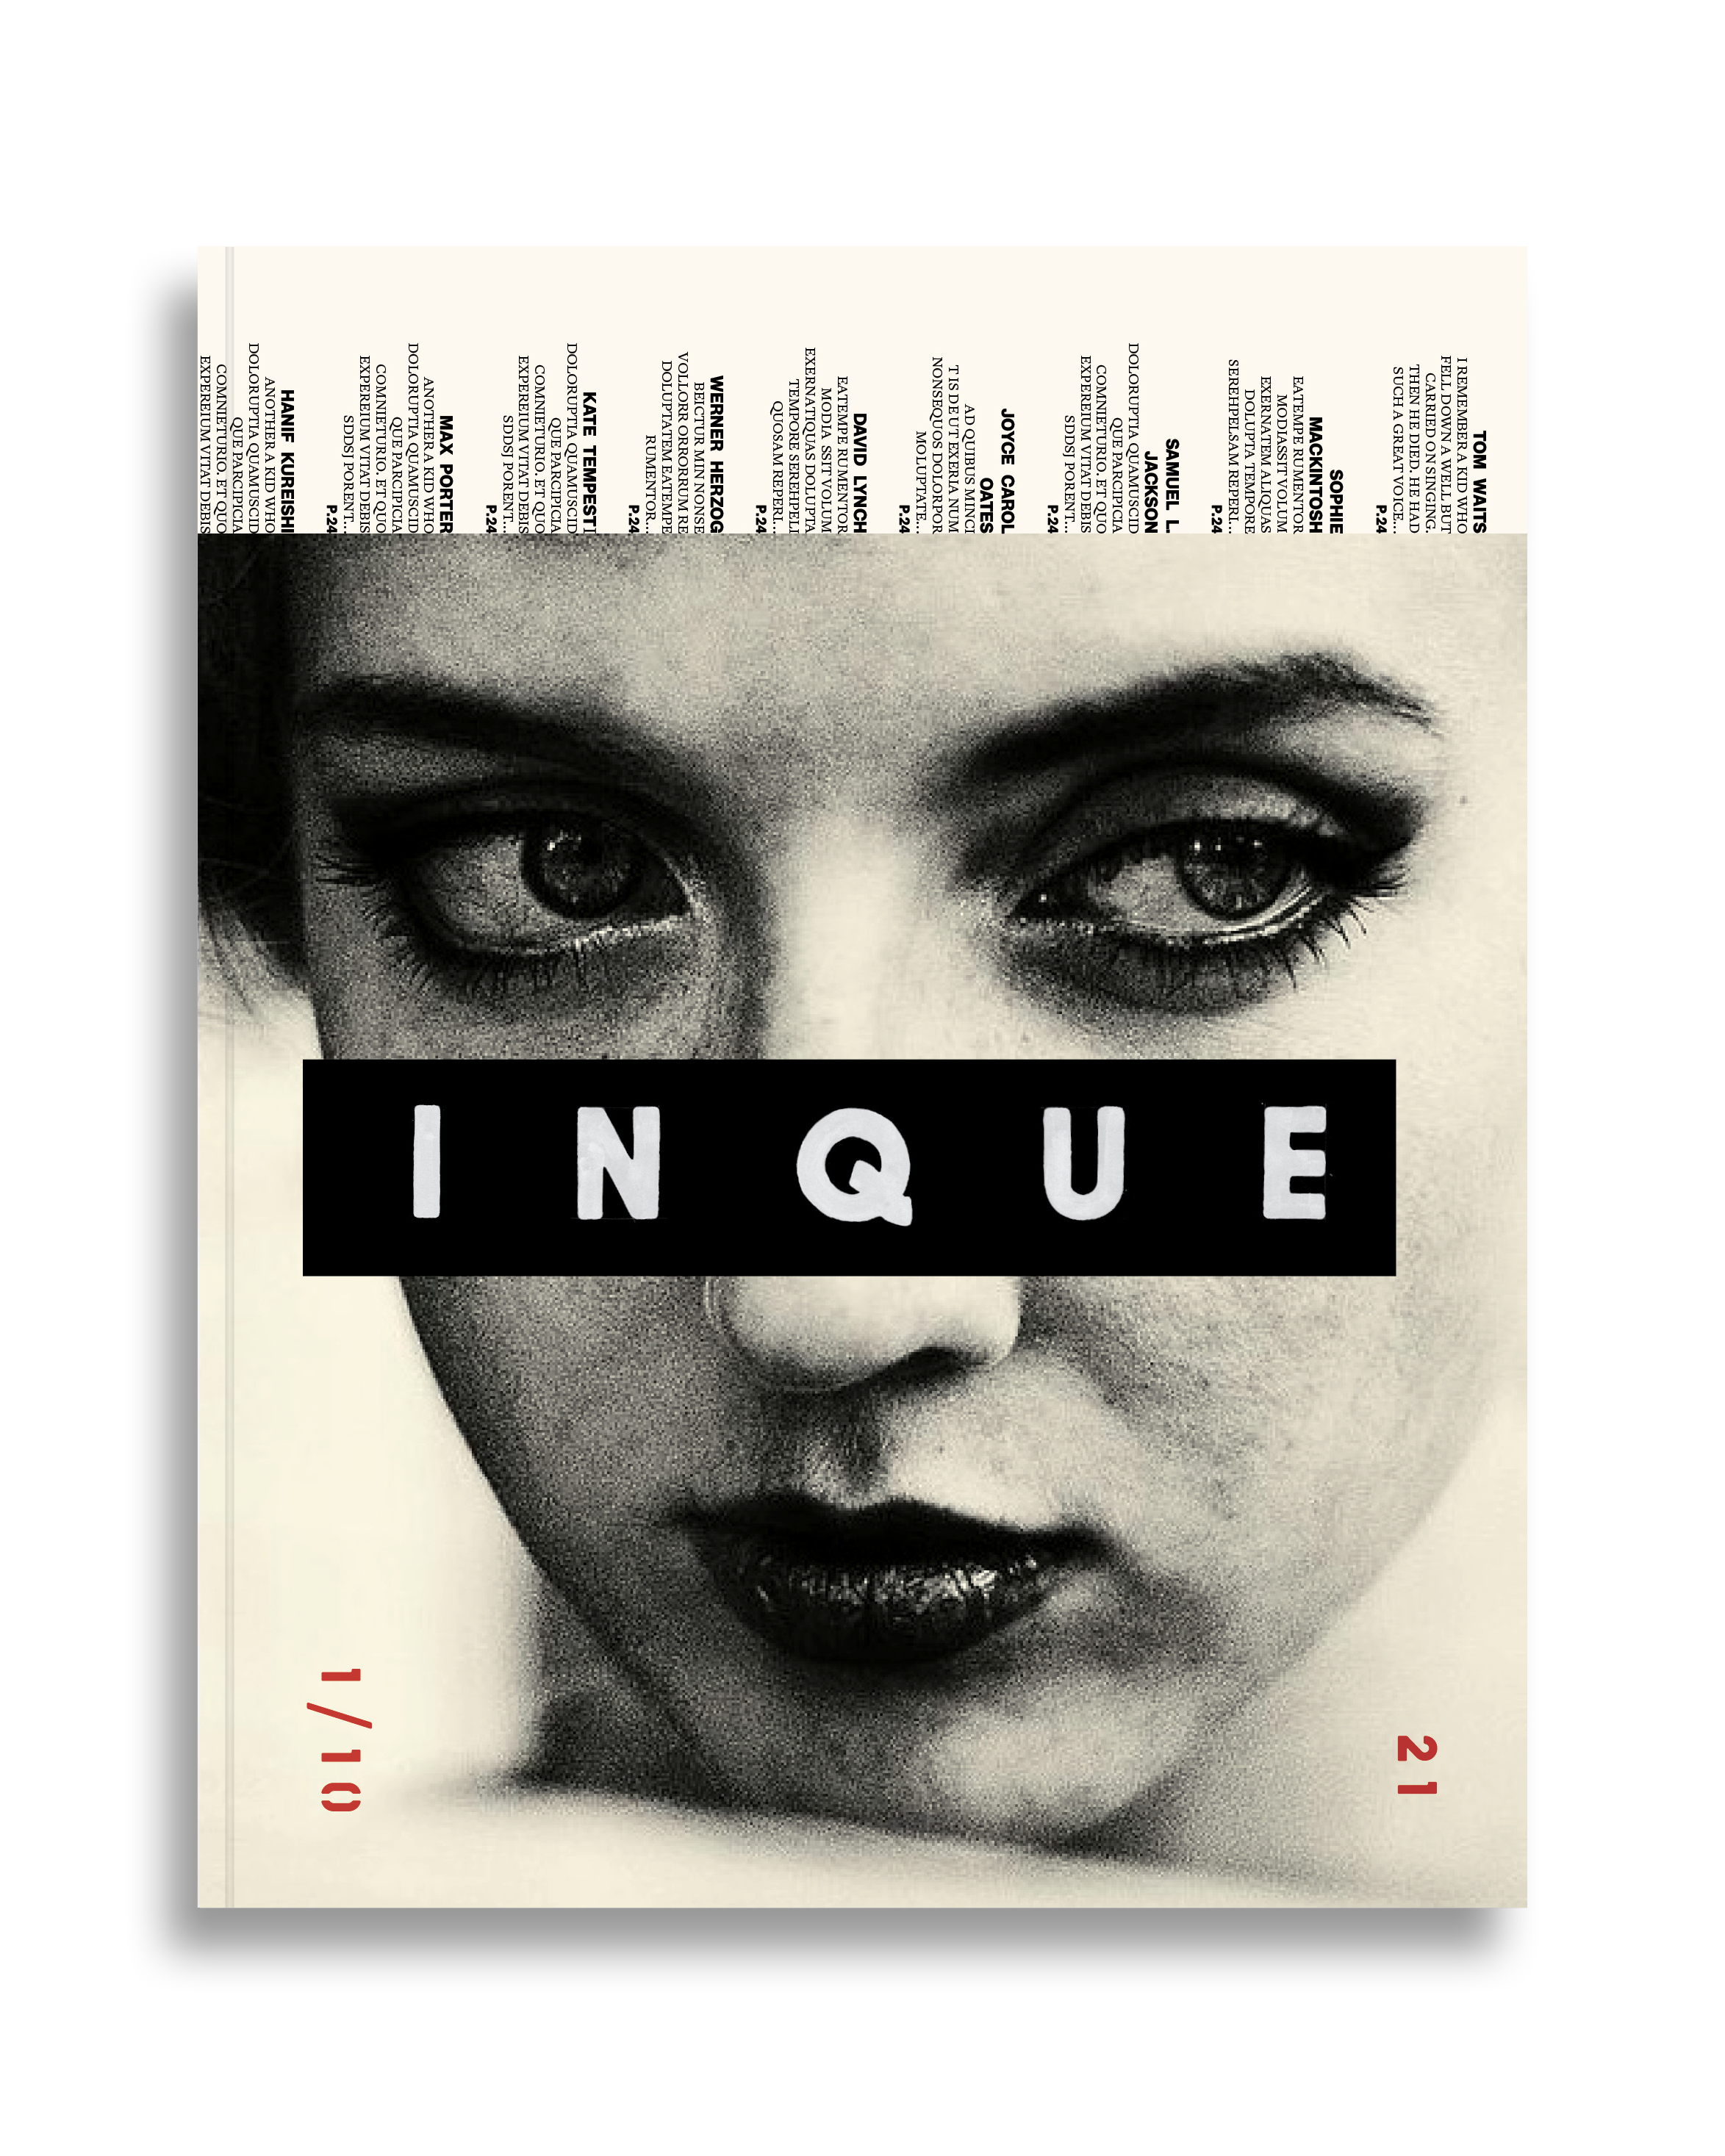 A mock-up of Inque's debut cover. The magazine will come out once a year for the next 10 years.